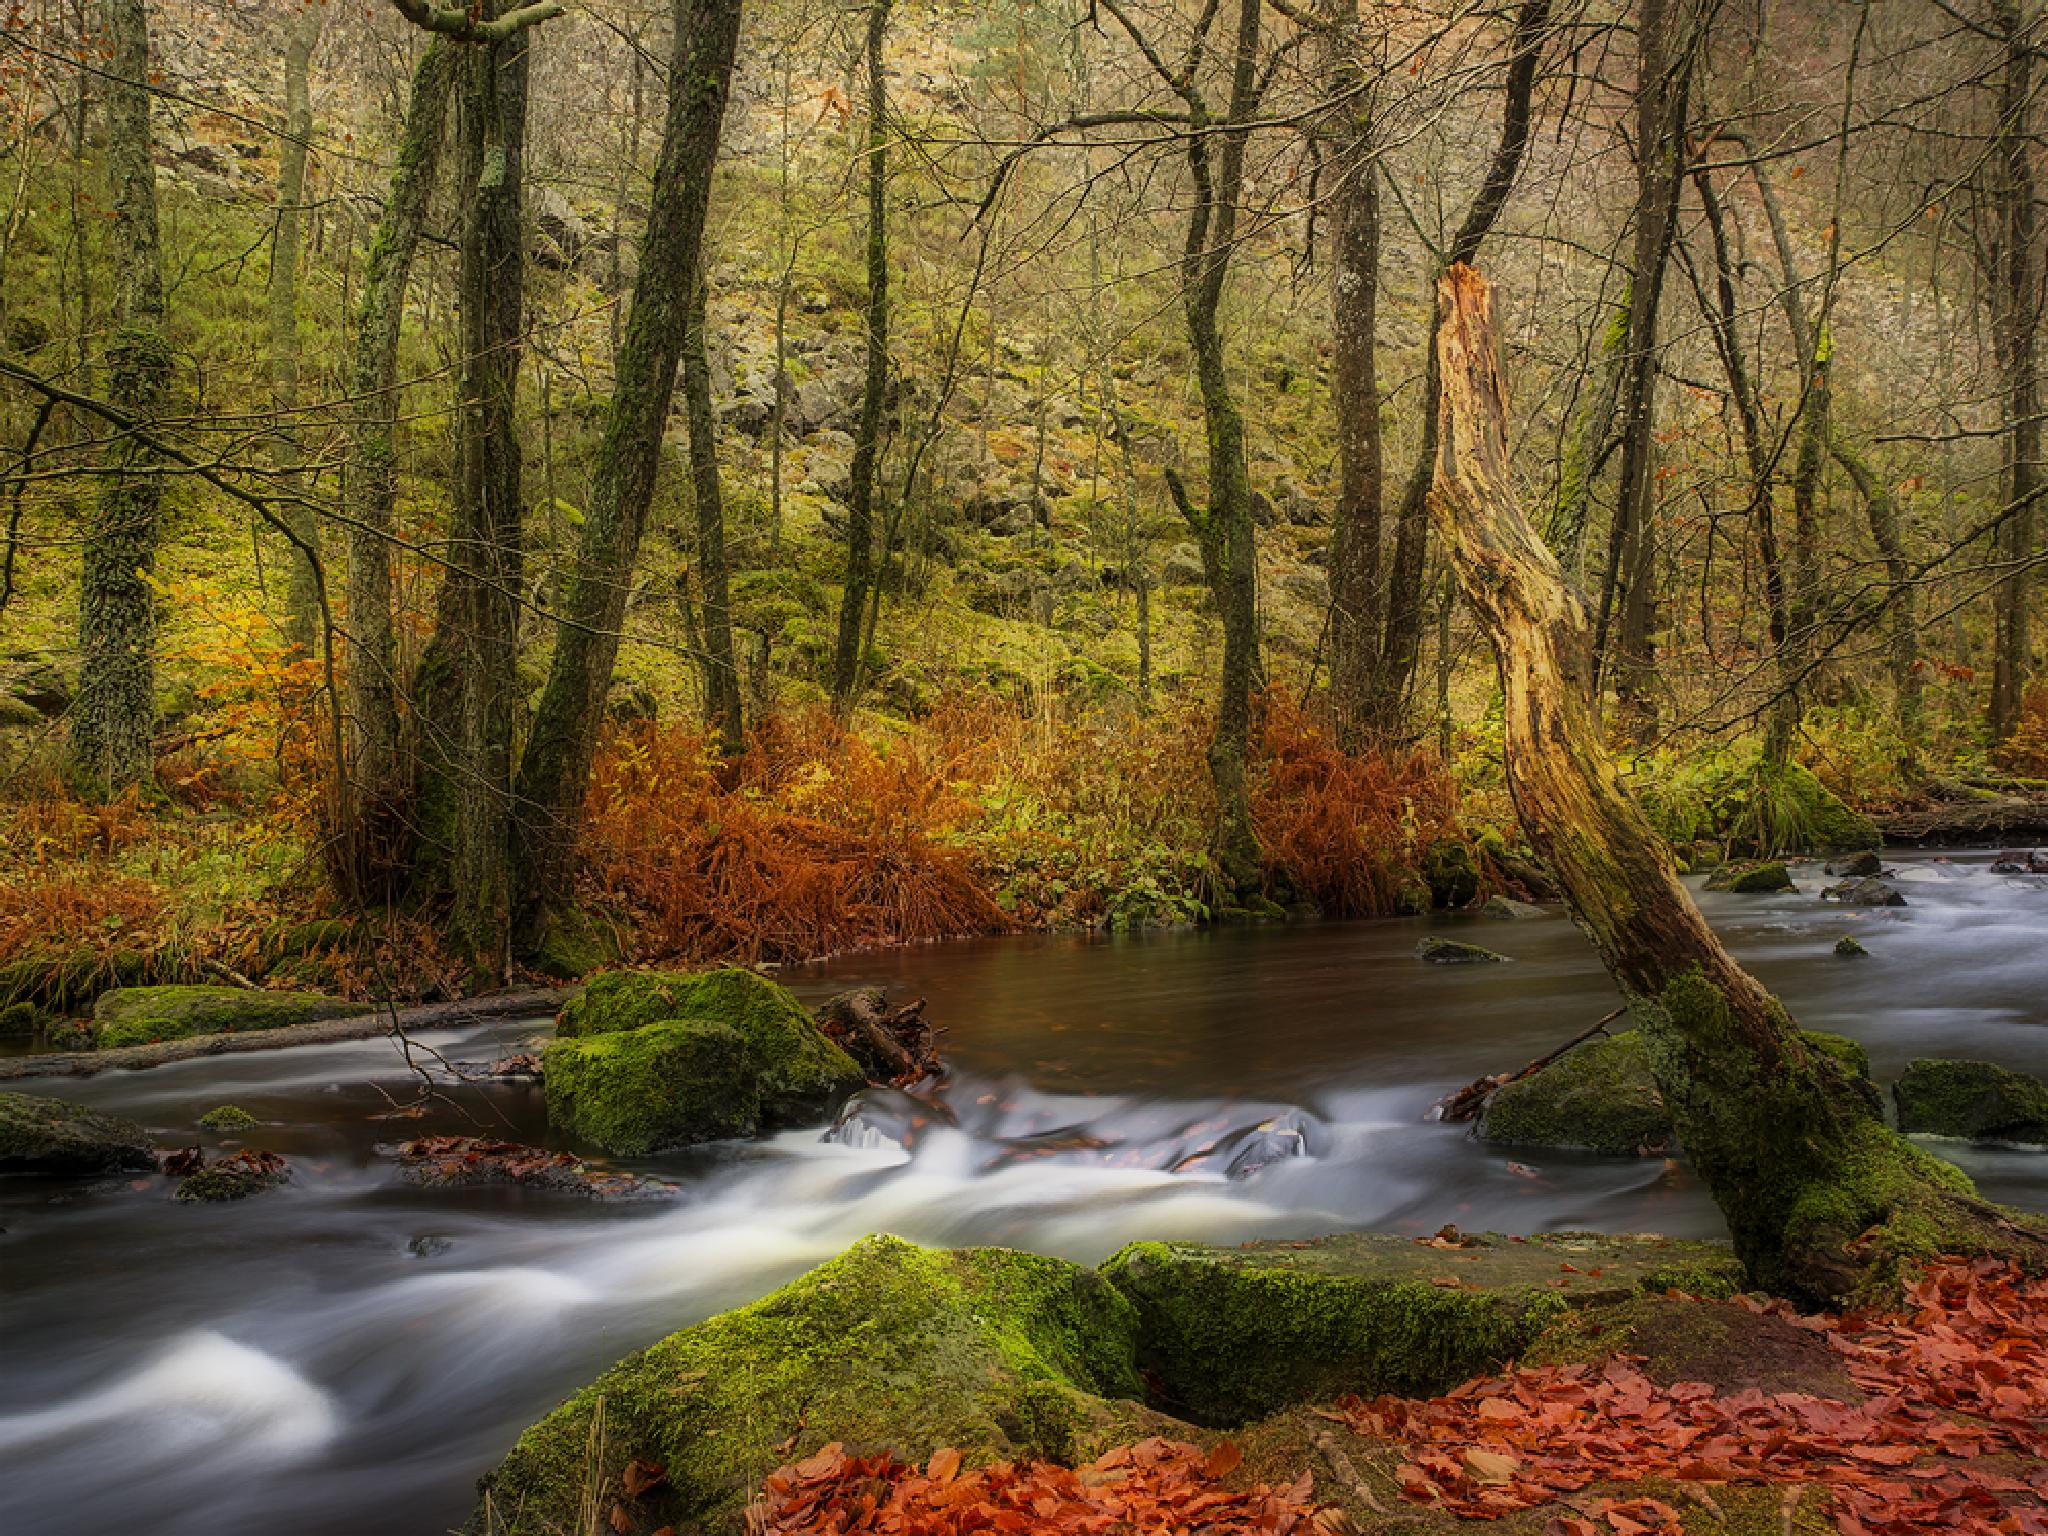 Creek by Peter Samuelsson